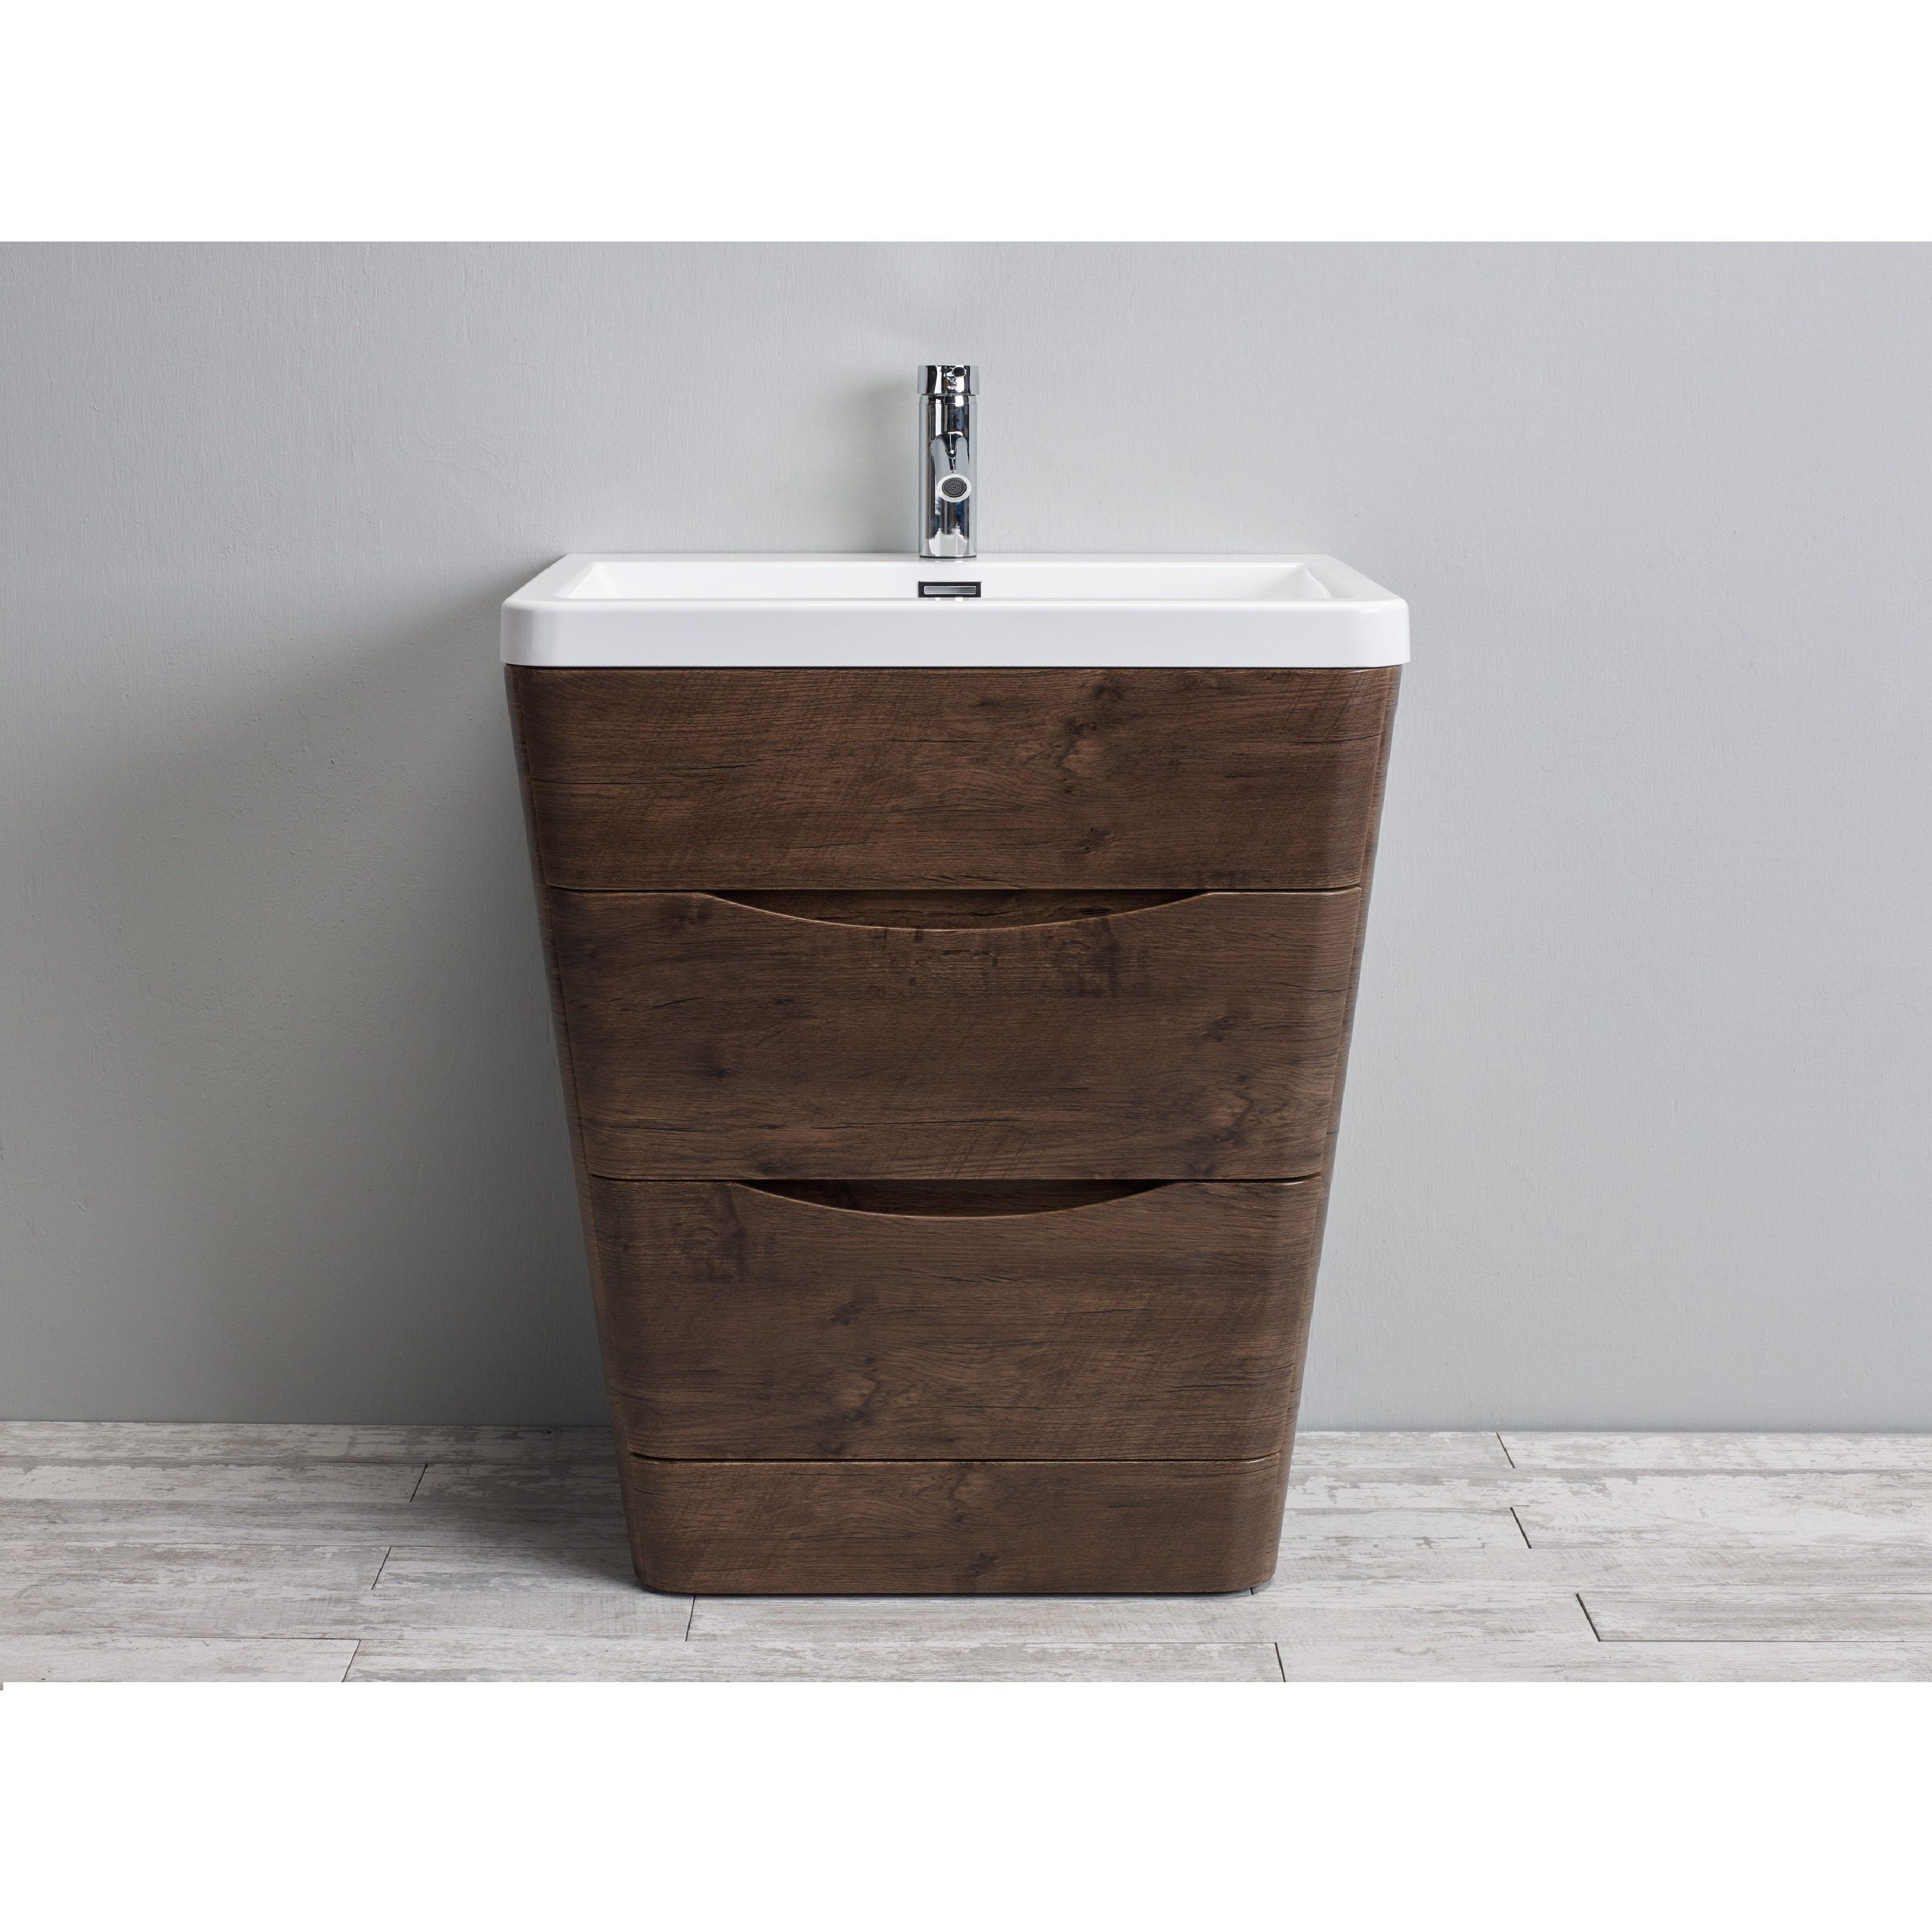 cabinets enjoyable best fancy tops expresso white vanities single design in sink bathroom naomi inch vanity home for inches interior modern dazzling with less